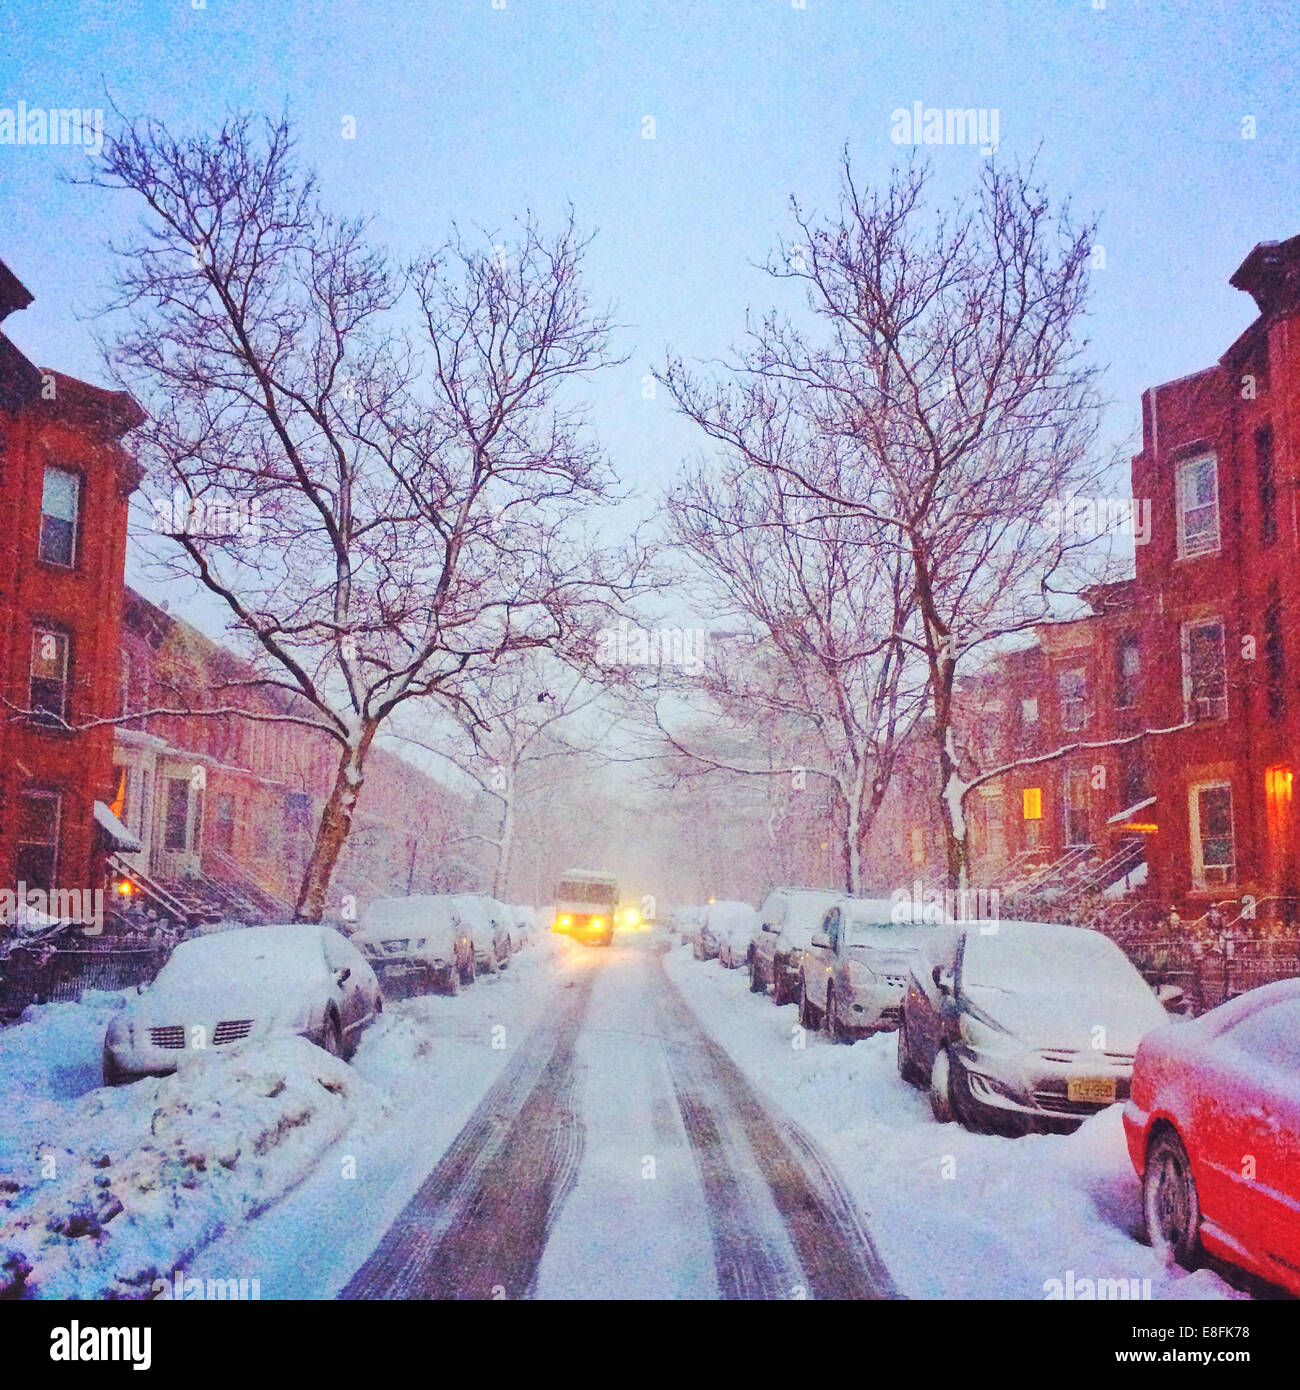 USA, New York State, New York City, Brooklyn in snow - Stock Image